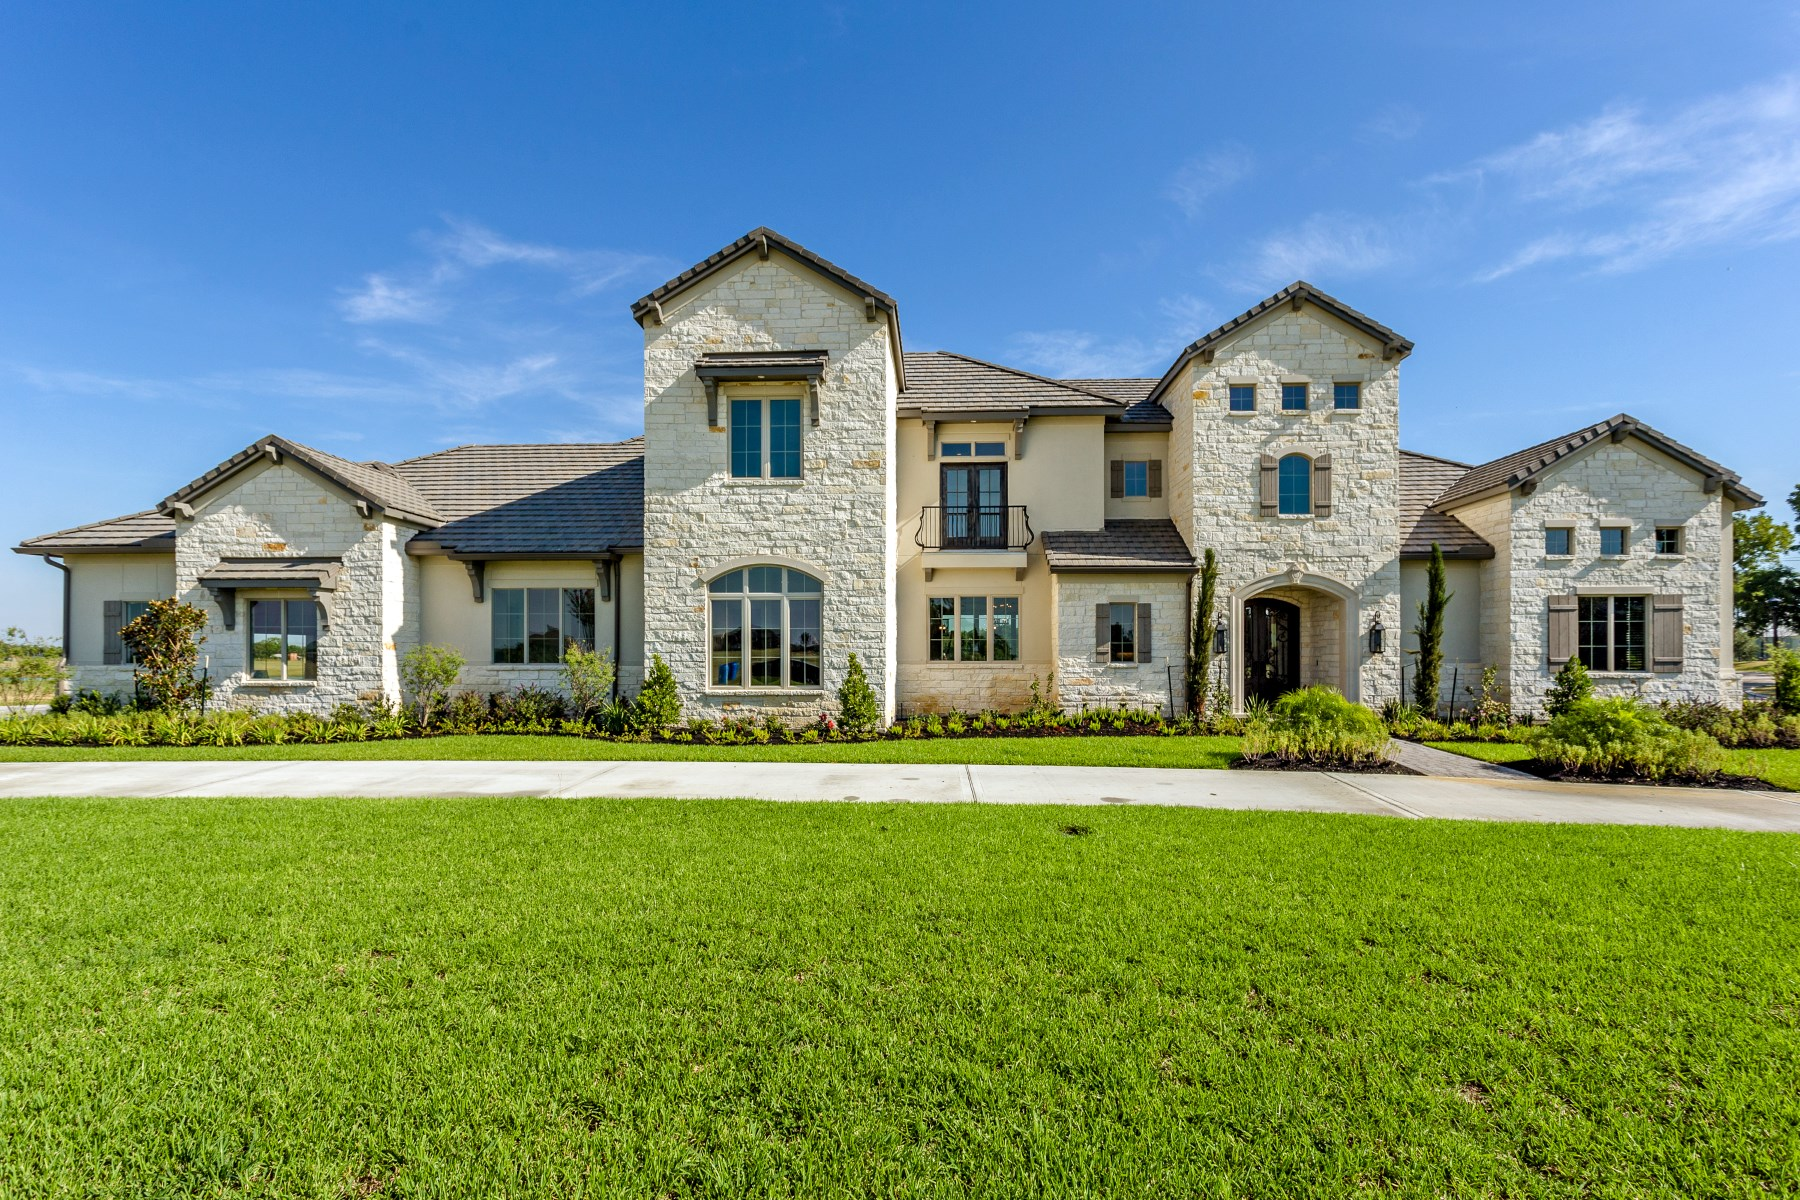 Single Family Home for Sale at 136 Tige Point Drive 136 Tige Point Drive Katy, Texas 77493 United States